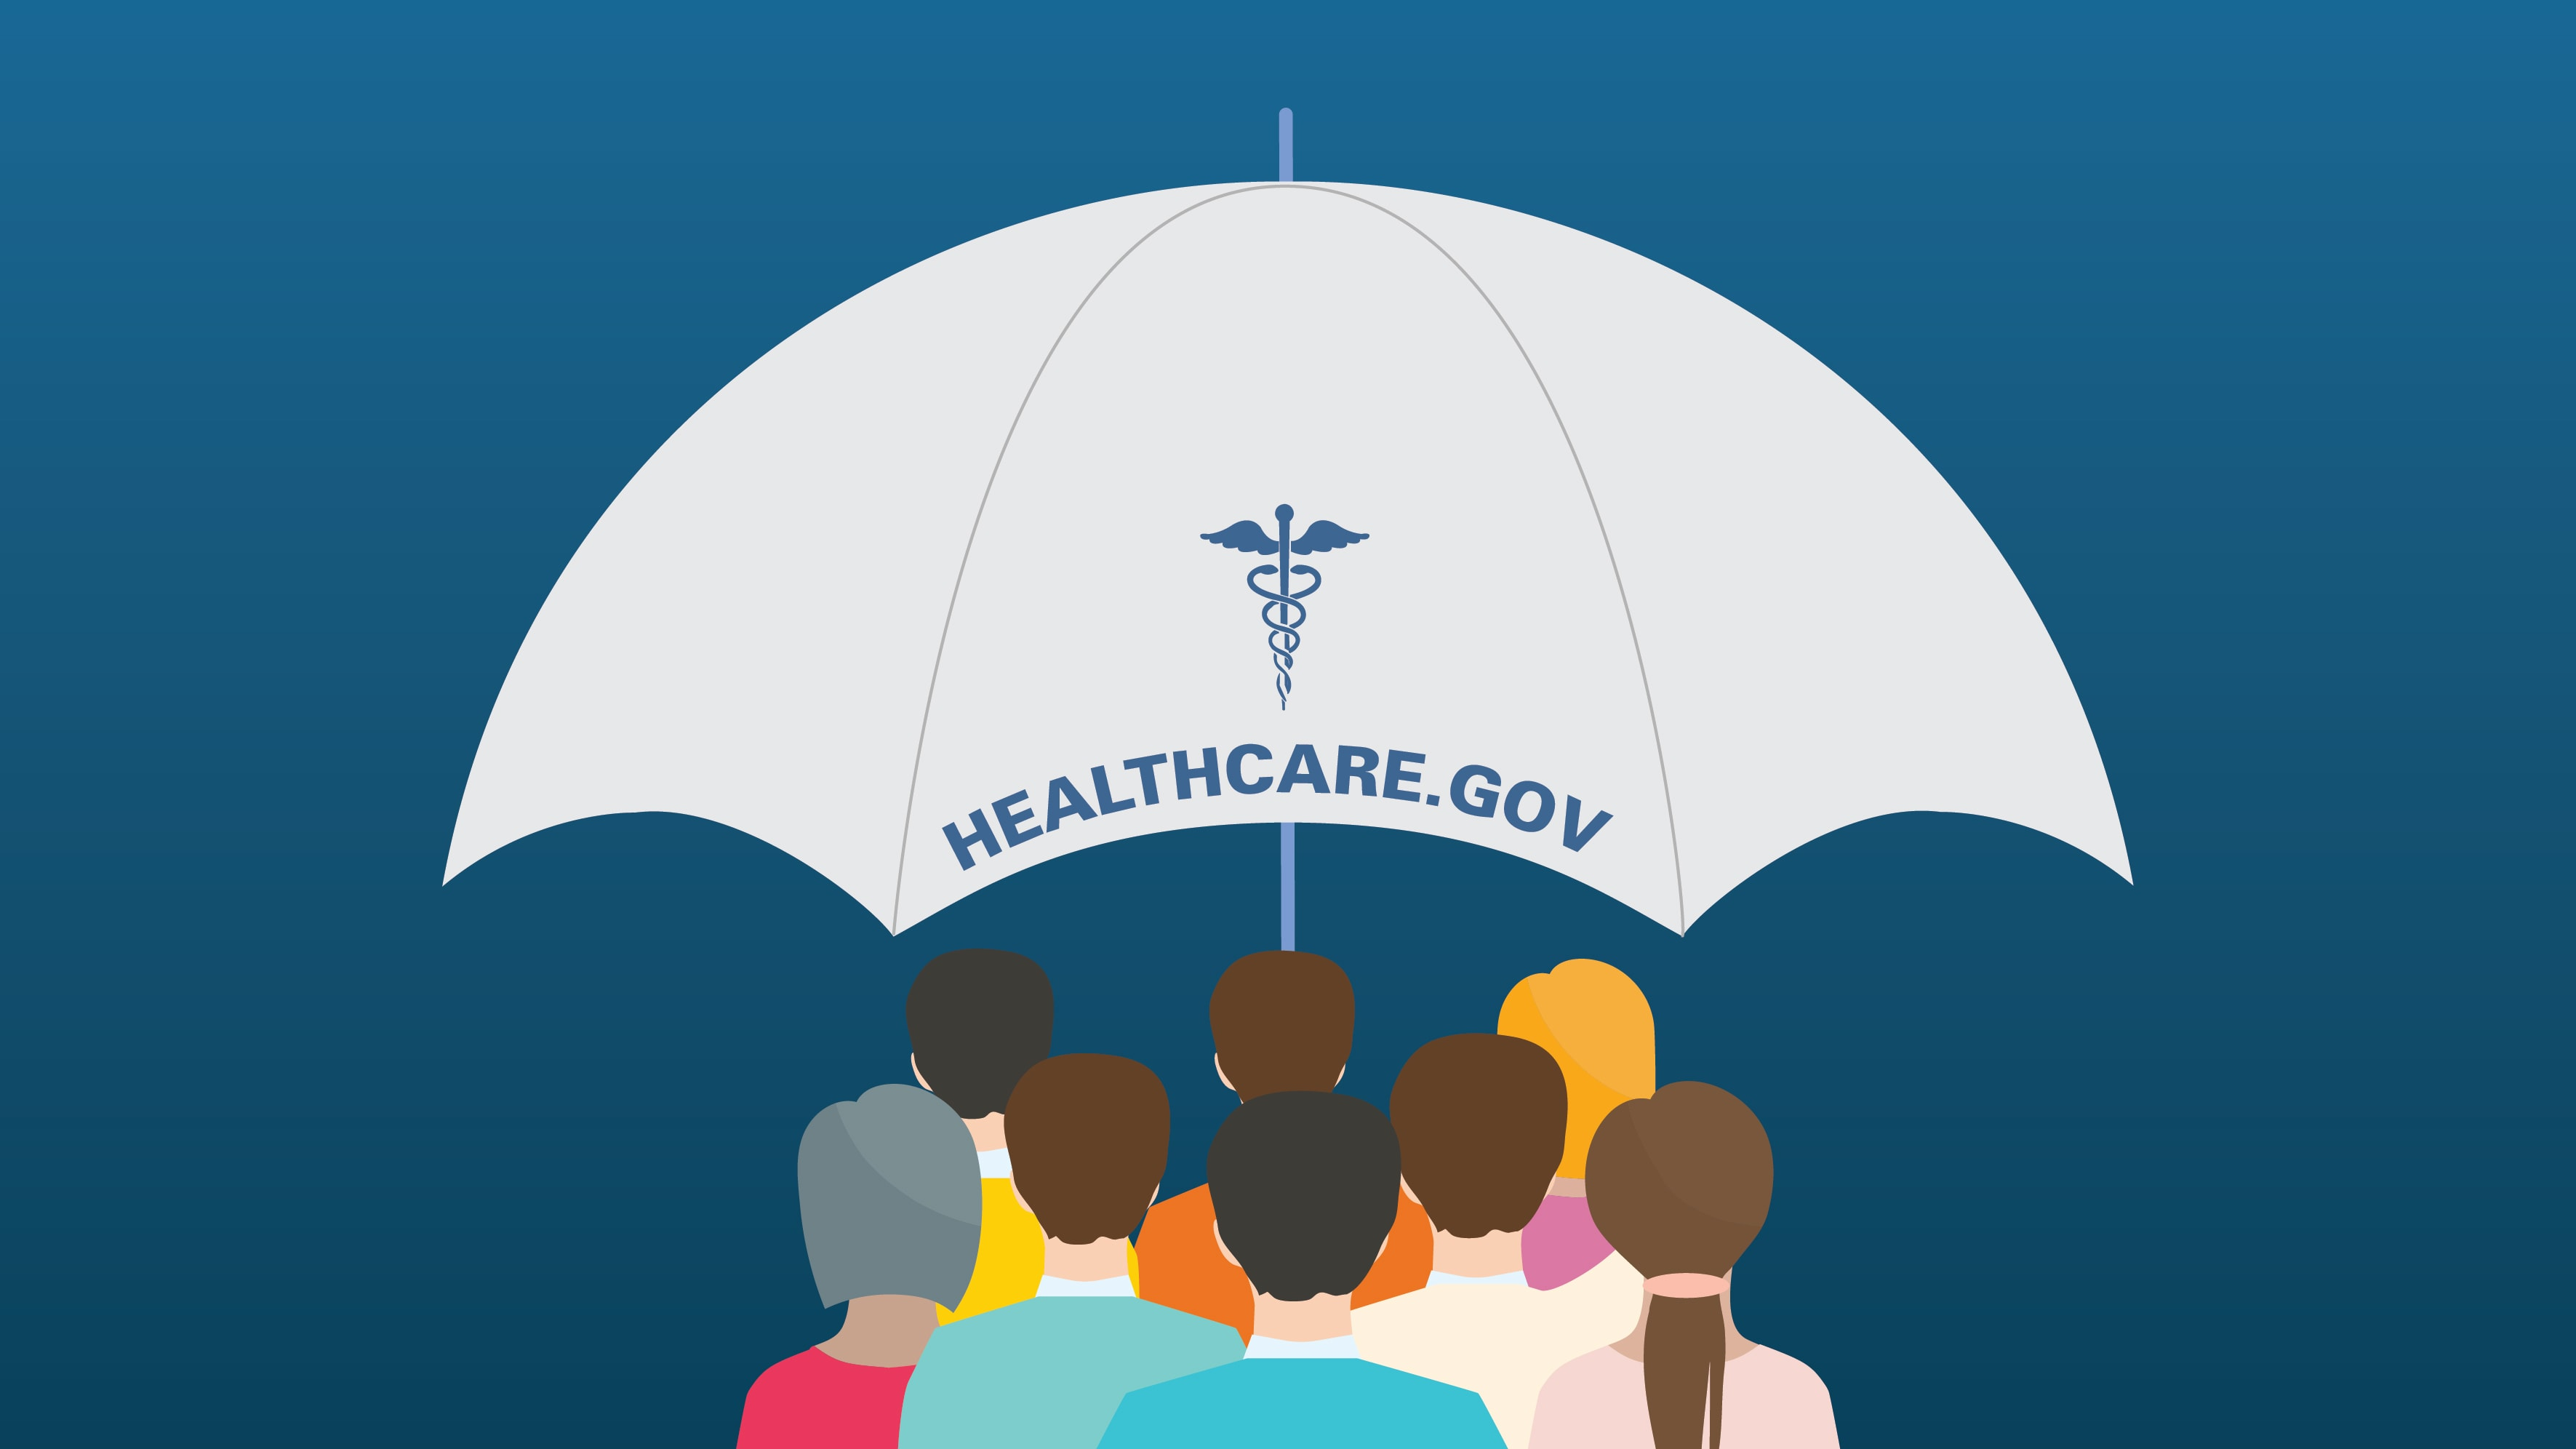 A group of people under the ACA's healthcare.gov umbrella